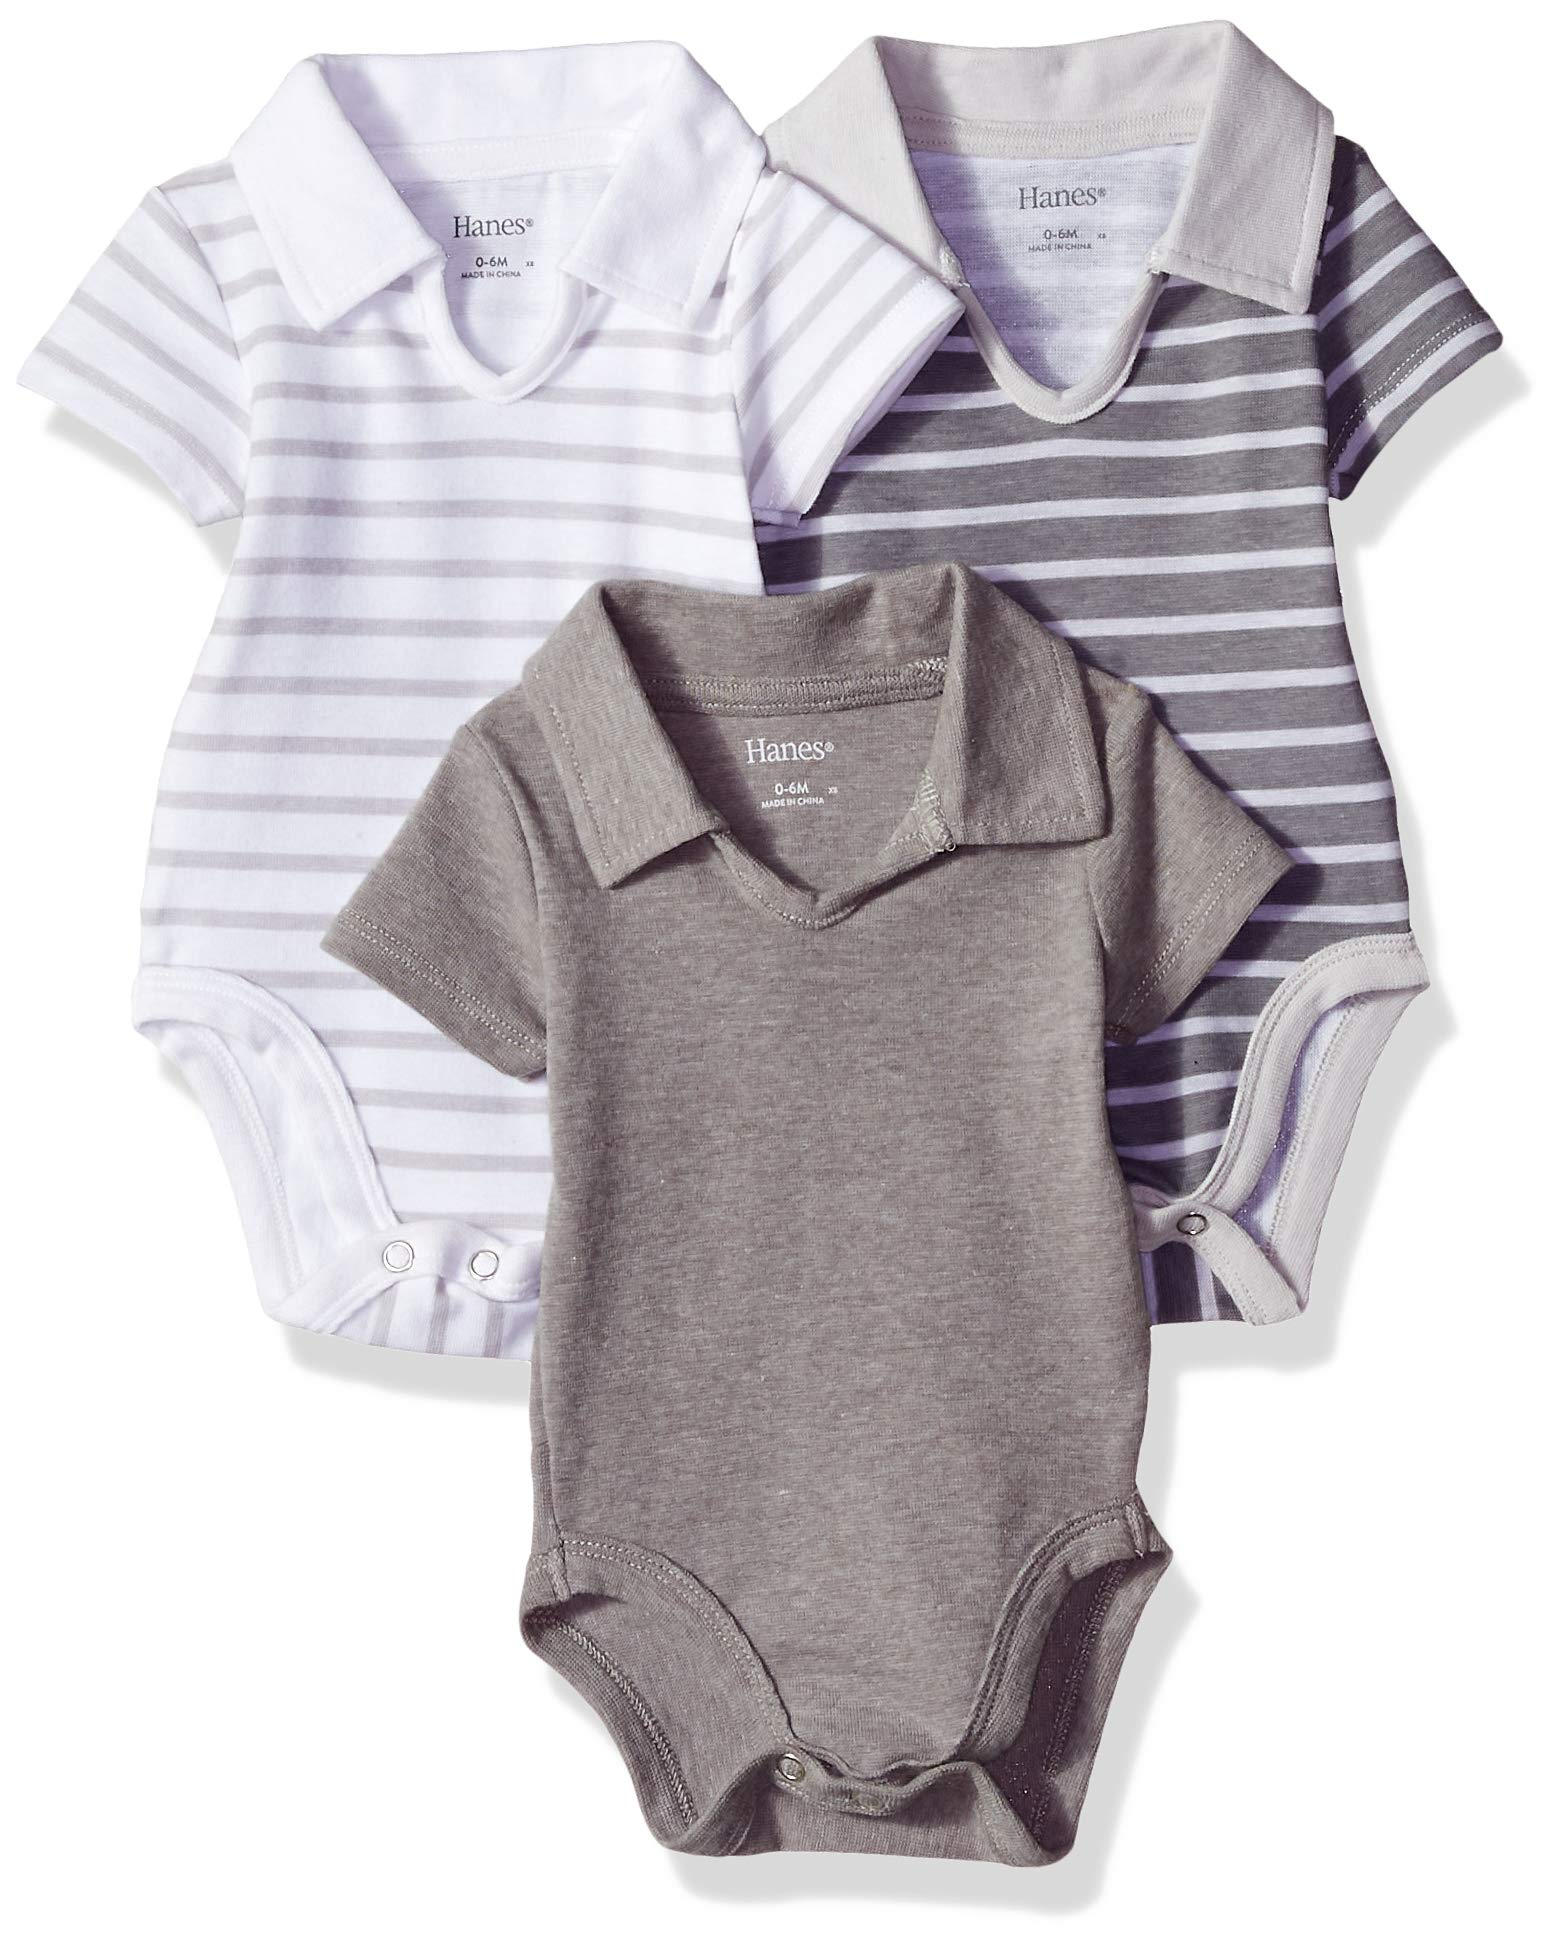 Hanes Ultimate Baby Flexy 3 Pack Short Sleeve Polo Bodysuits, Grey Stripe, 6-12 Months by Hanes